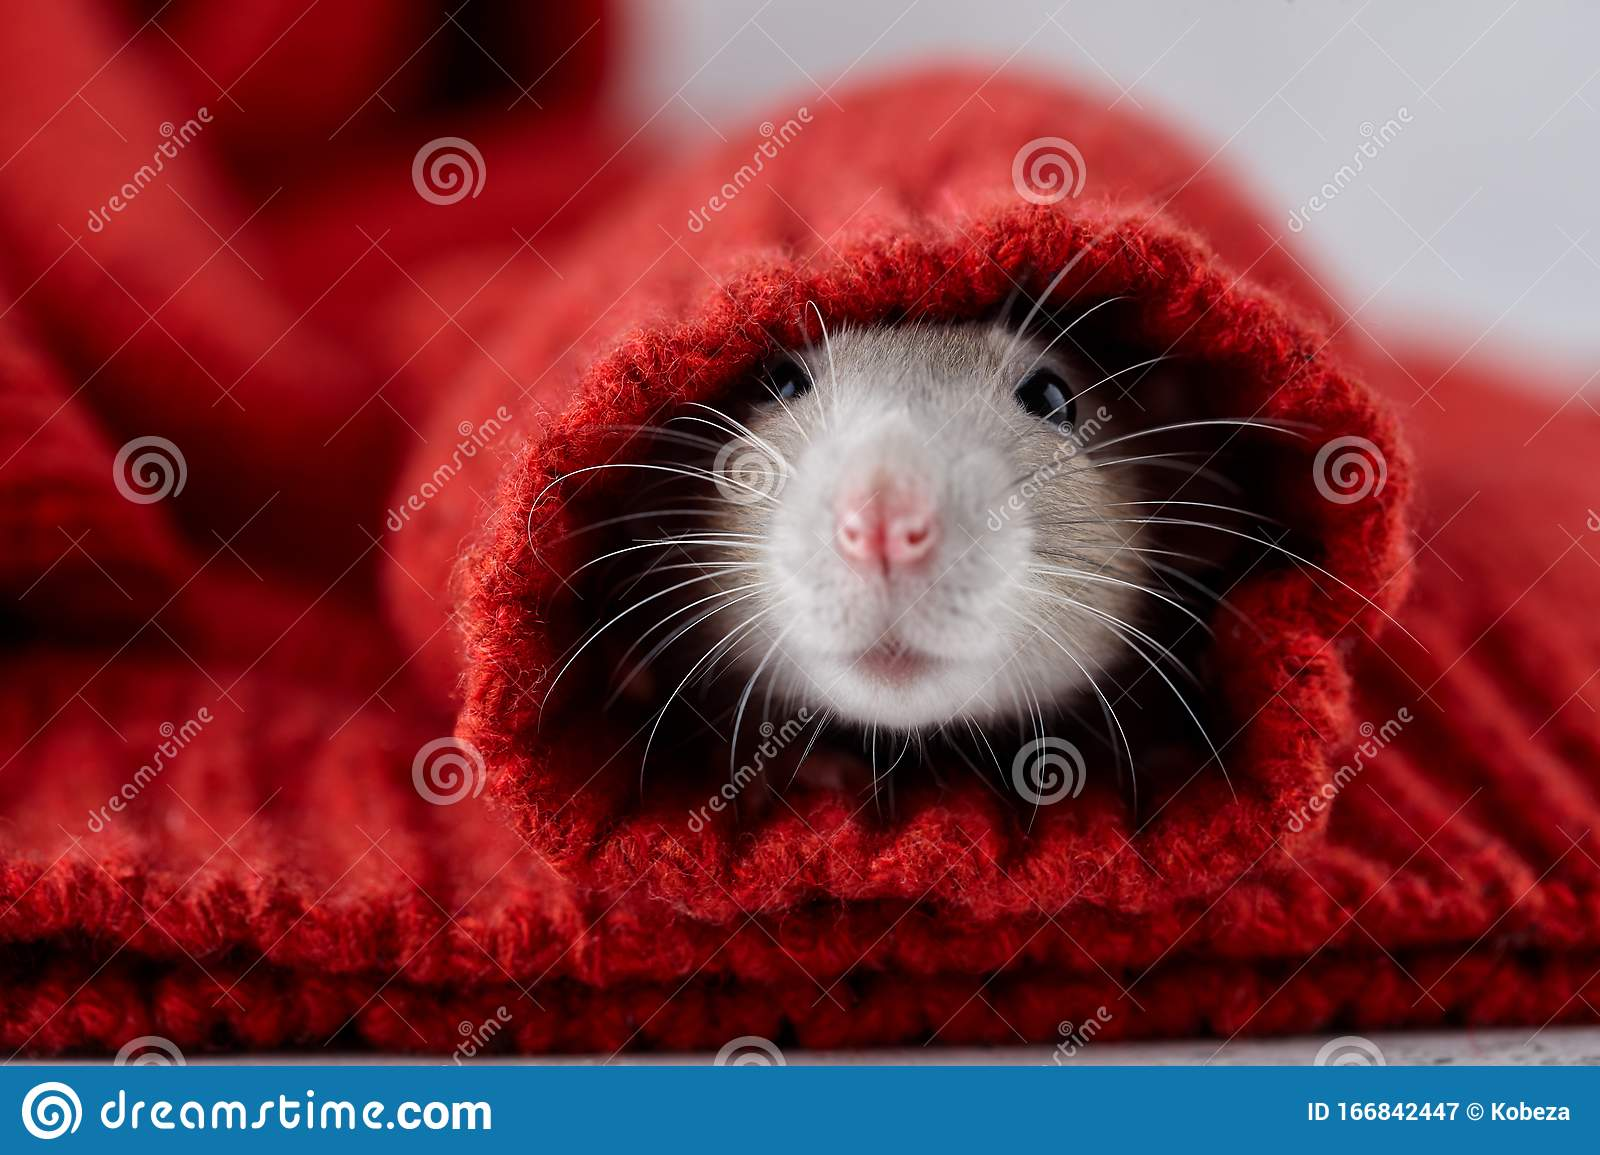 Rat In Red Christmas Winter Sweater Stock Image Image of